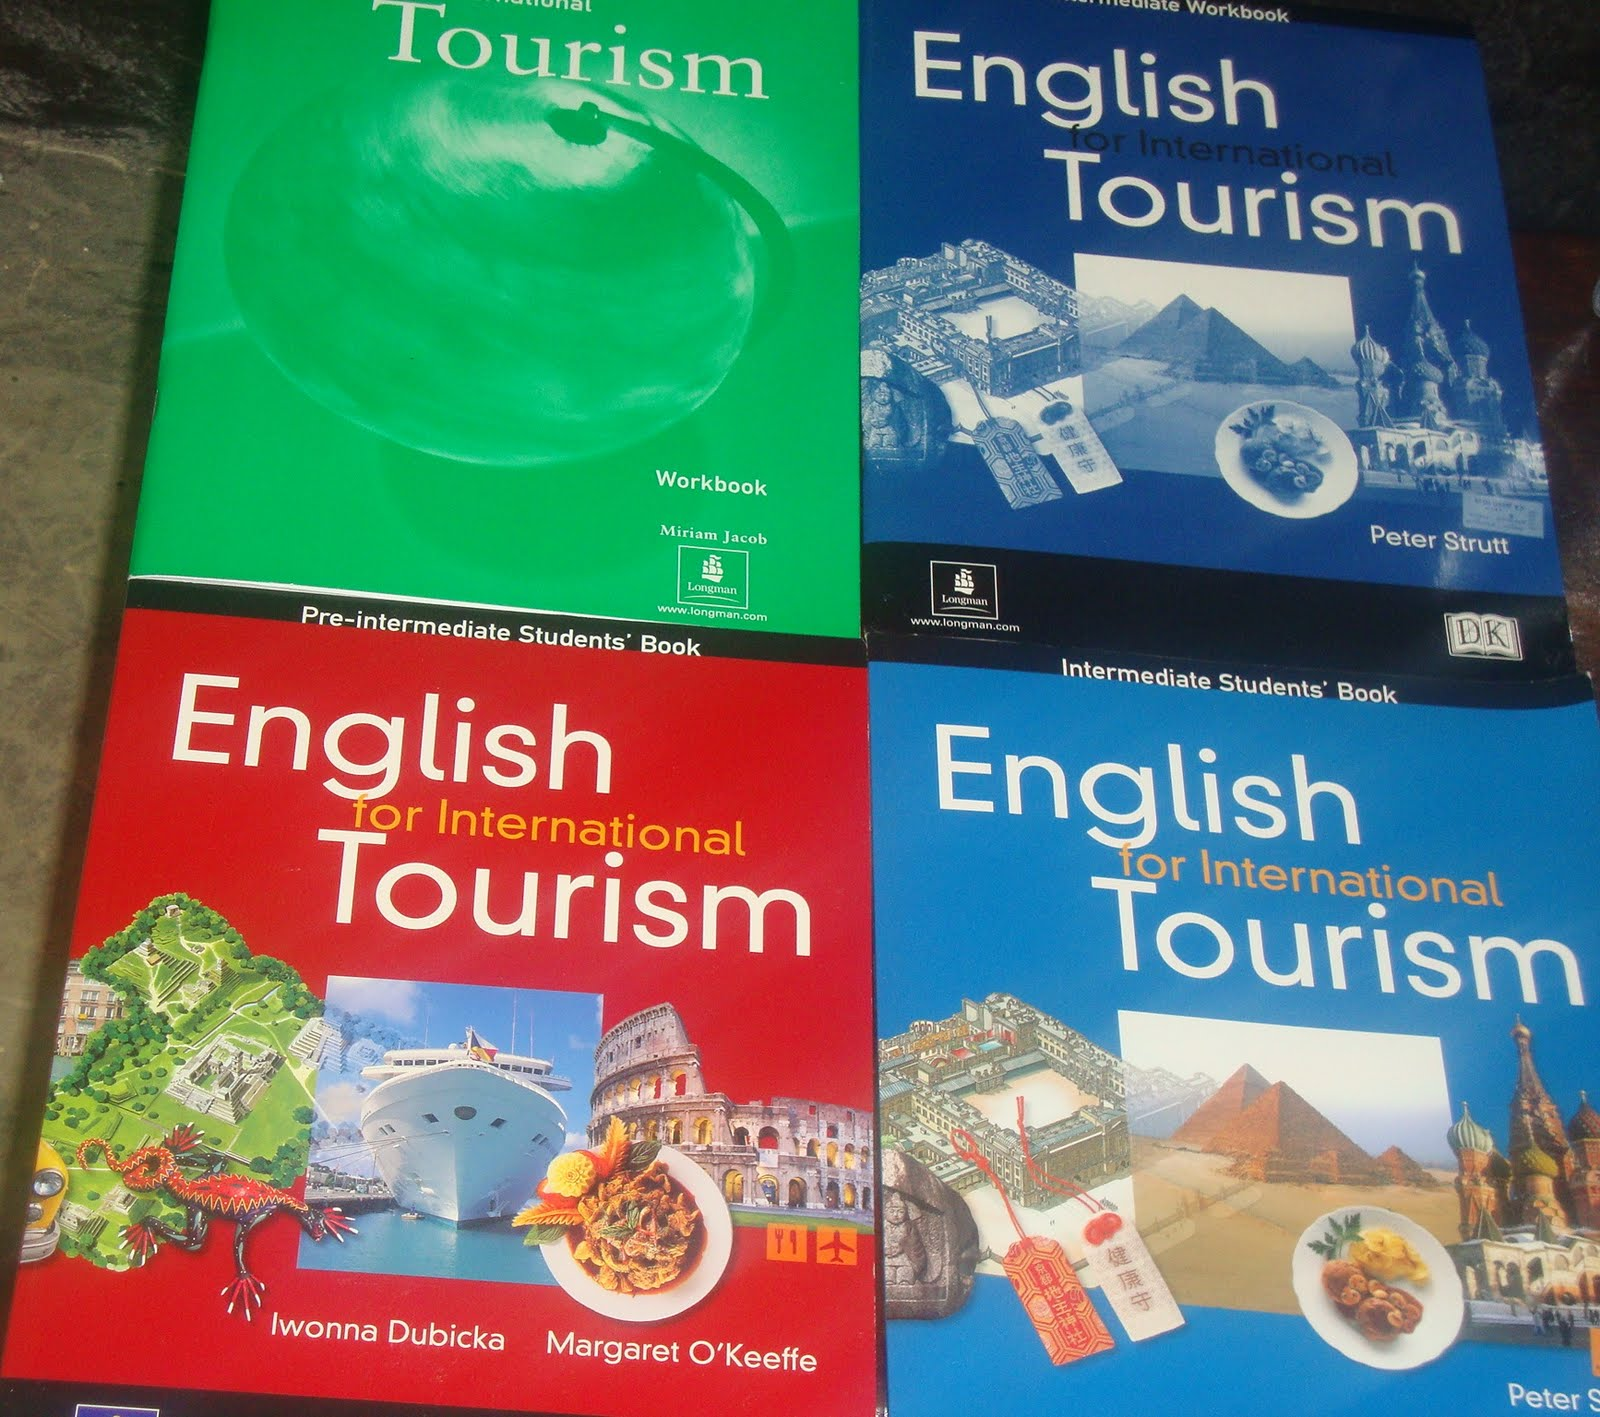 English Will Remain the International Language - The Linguist